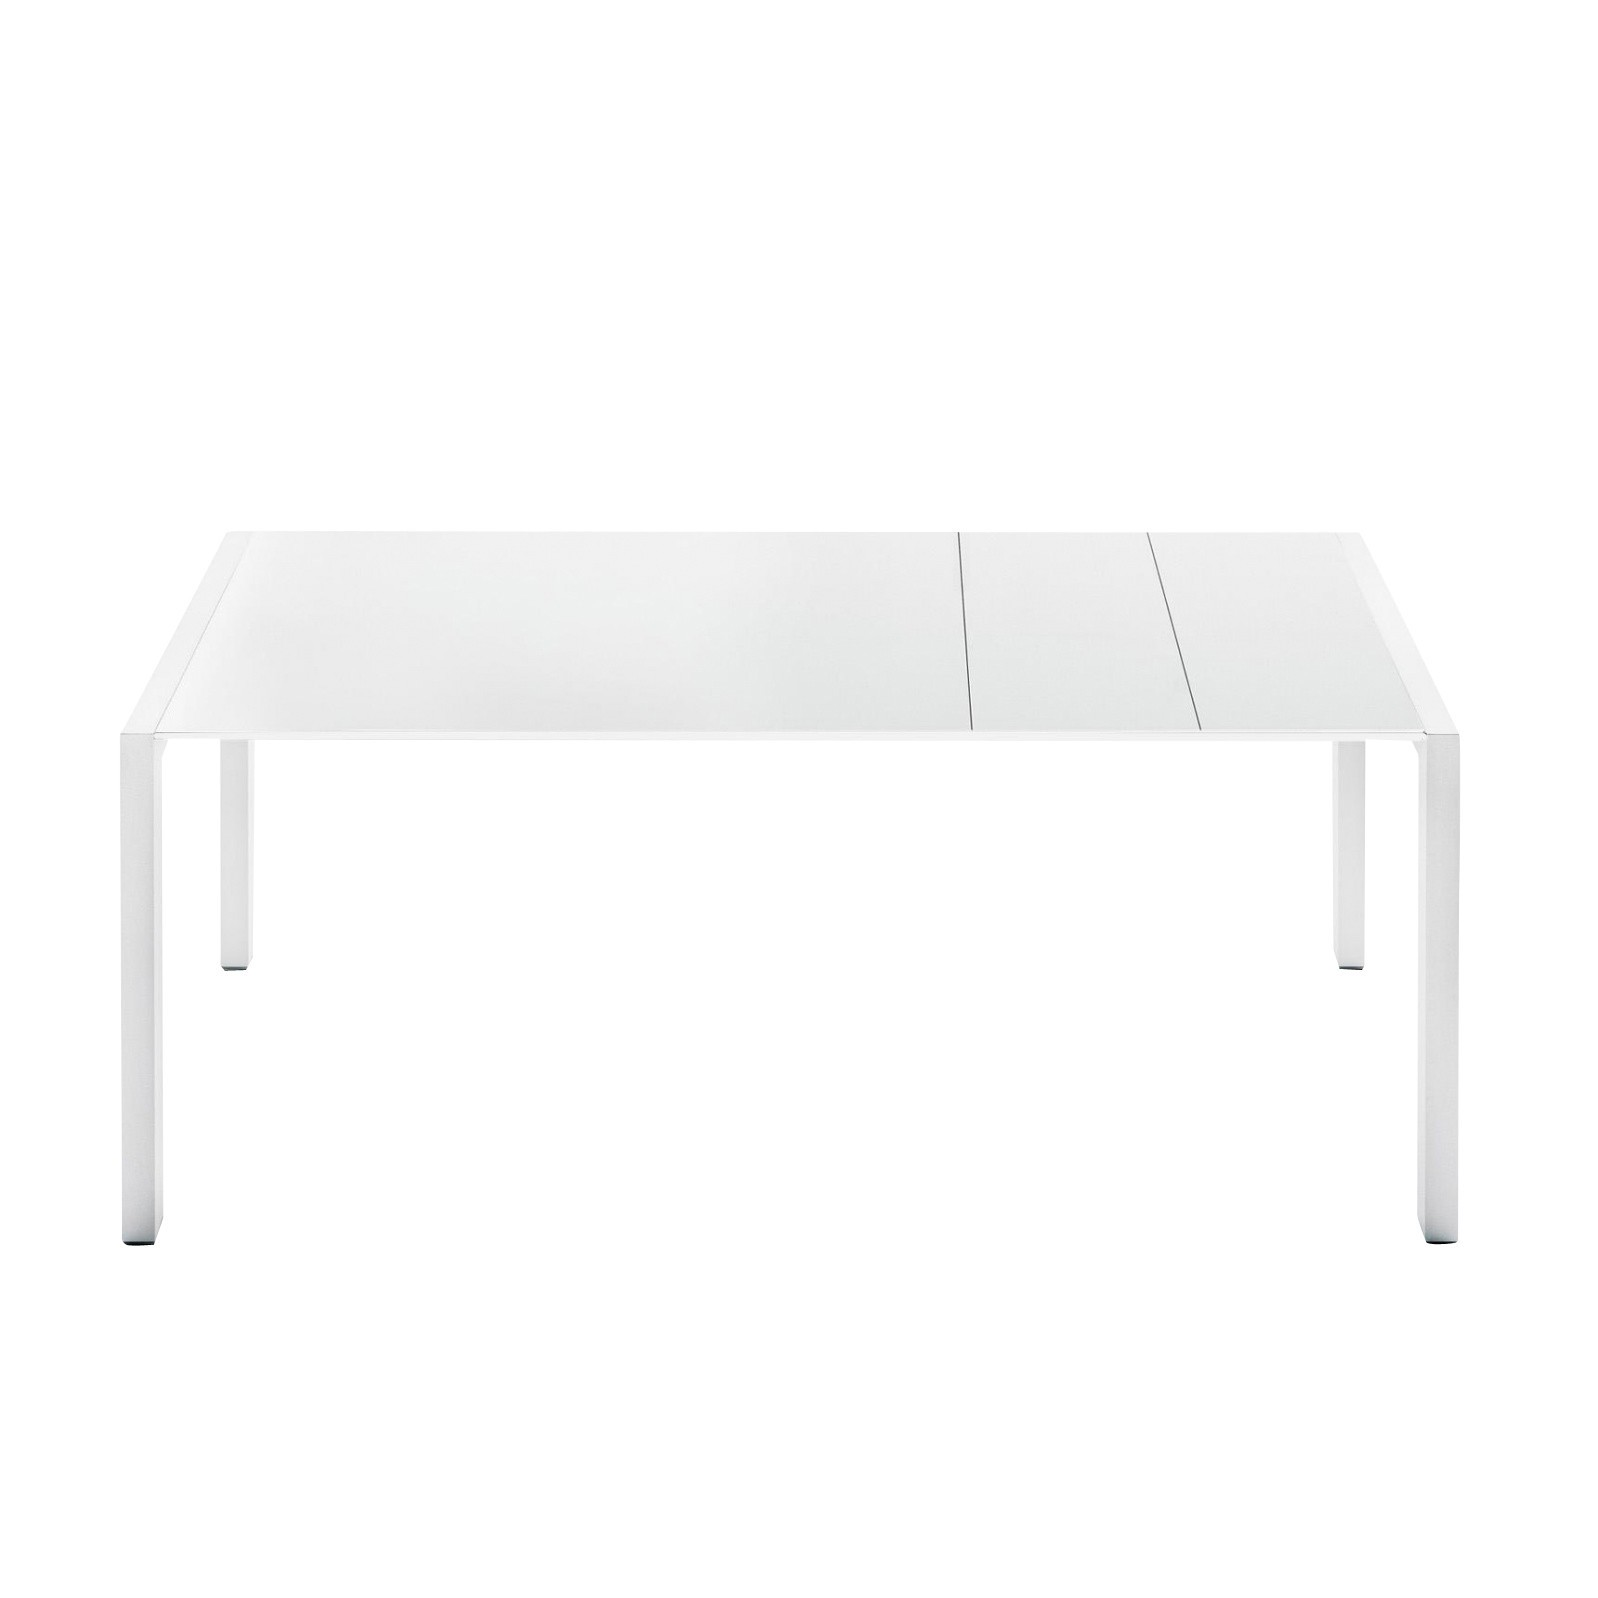 Sushi Pure White Tisch Ausziehbar Sushi Pure White Table Extendable